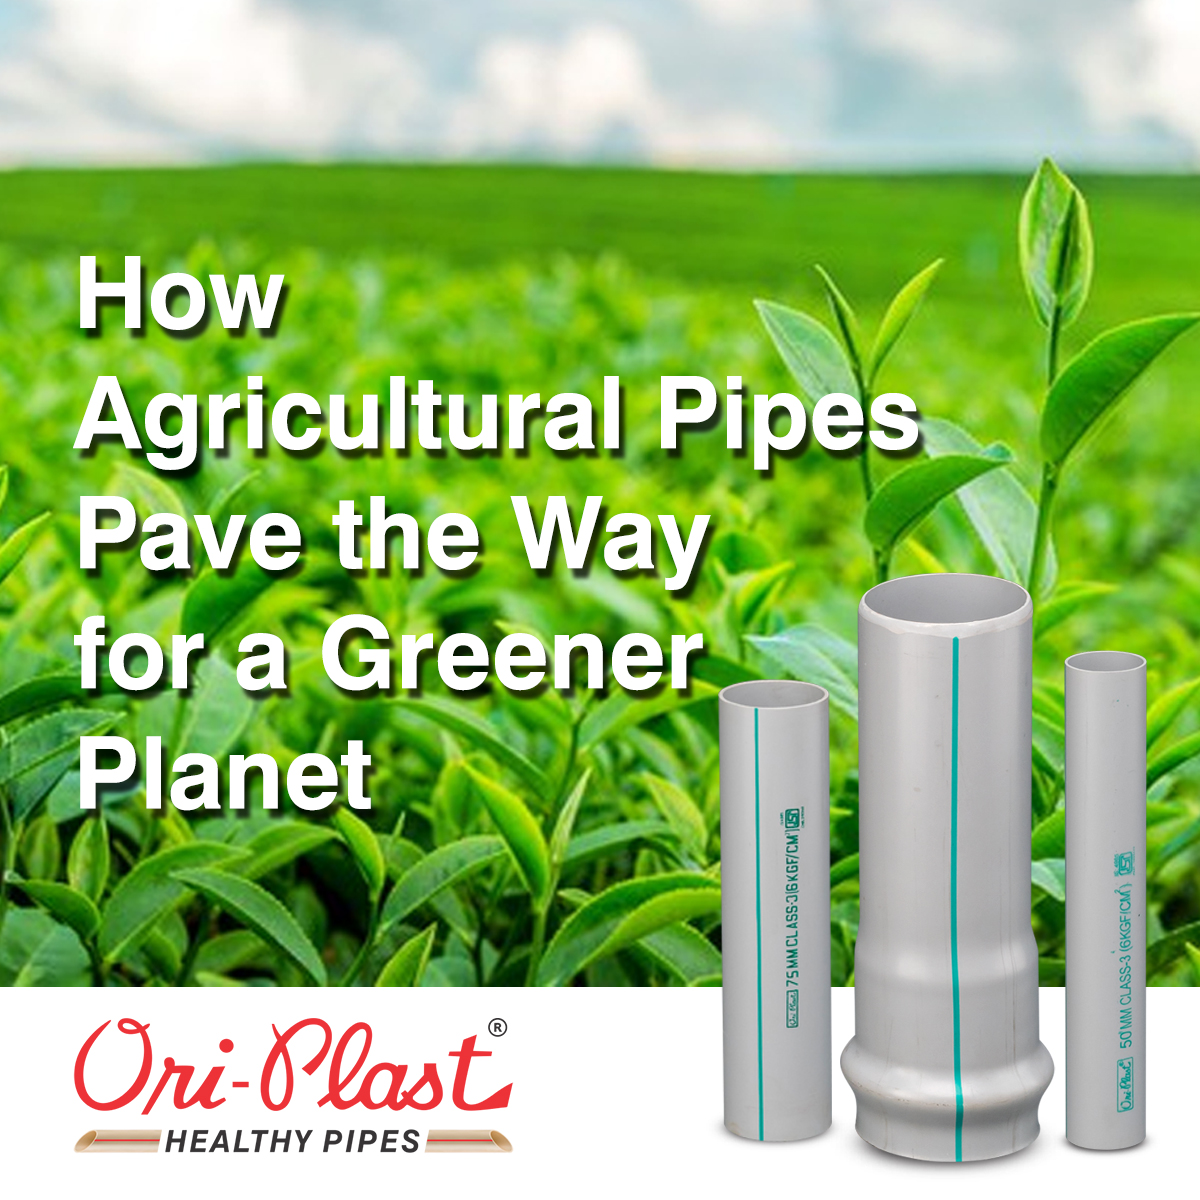 How Agricultural Pipes Pave the Way for a Greener Planet